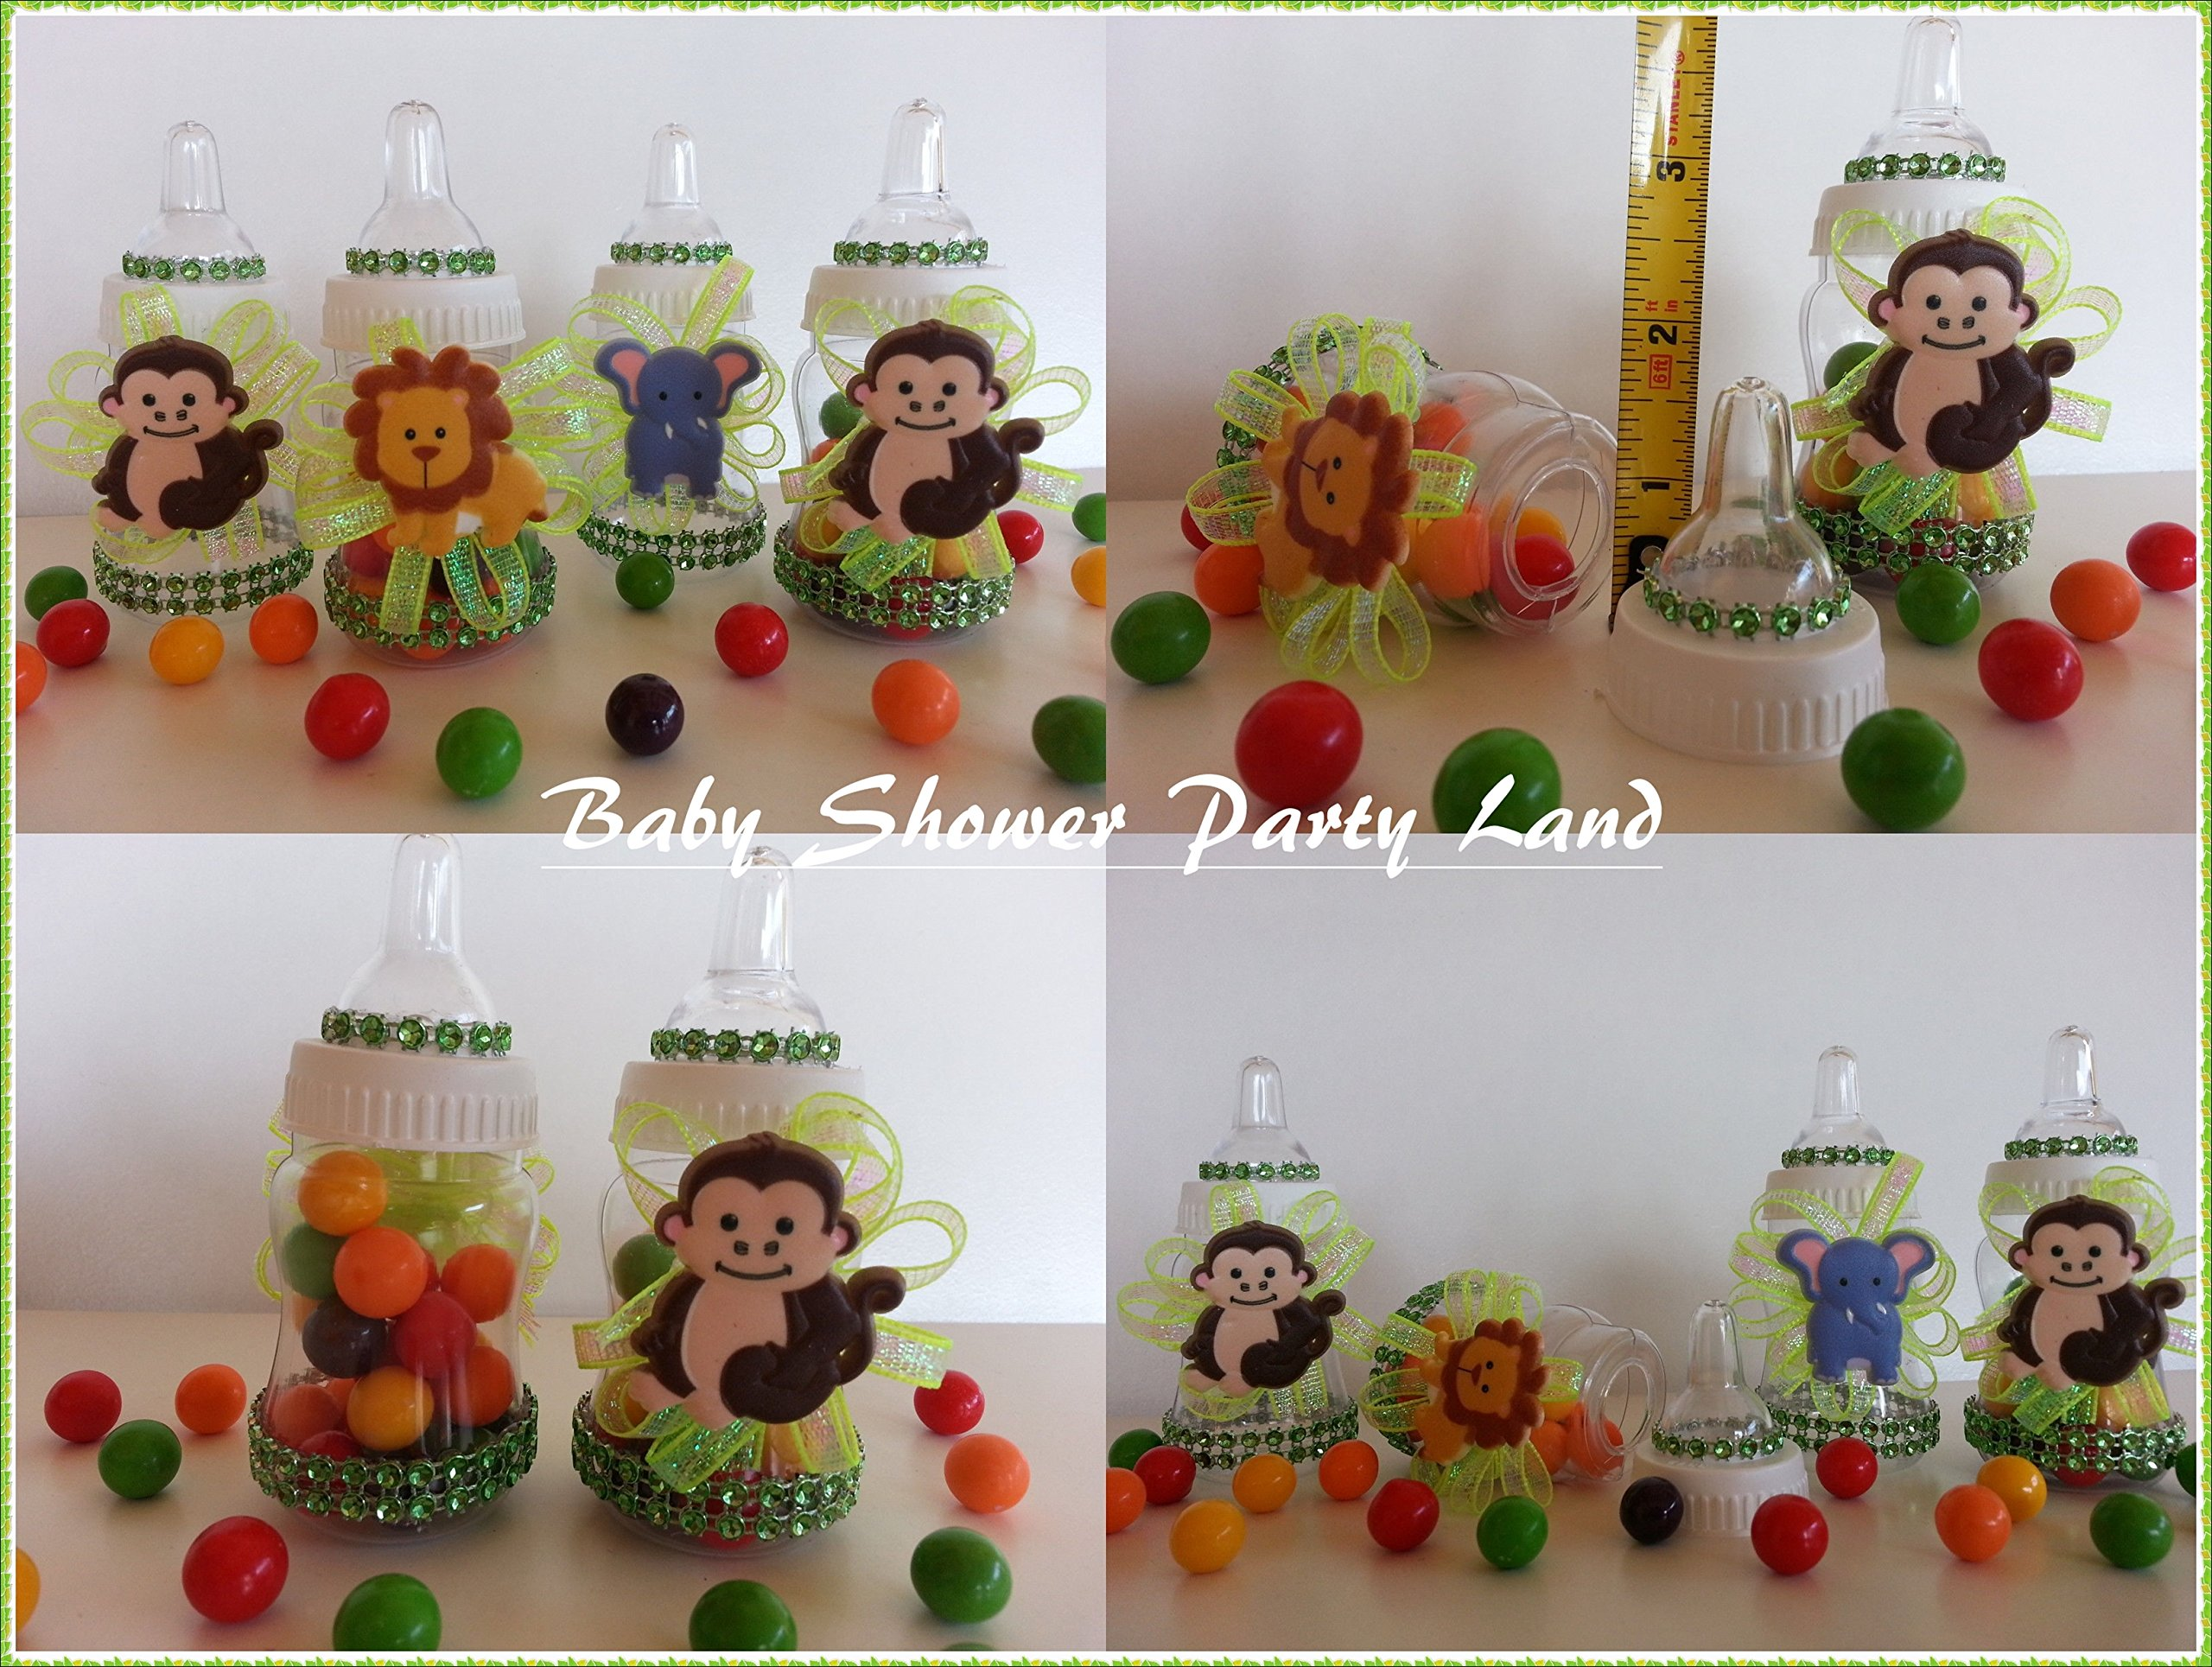 12 Fillable Bottles Baby Shower Favors Prizes Games Safari Jungle-Noah's Animals by Baby Shower Party Land